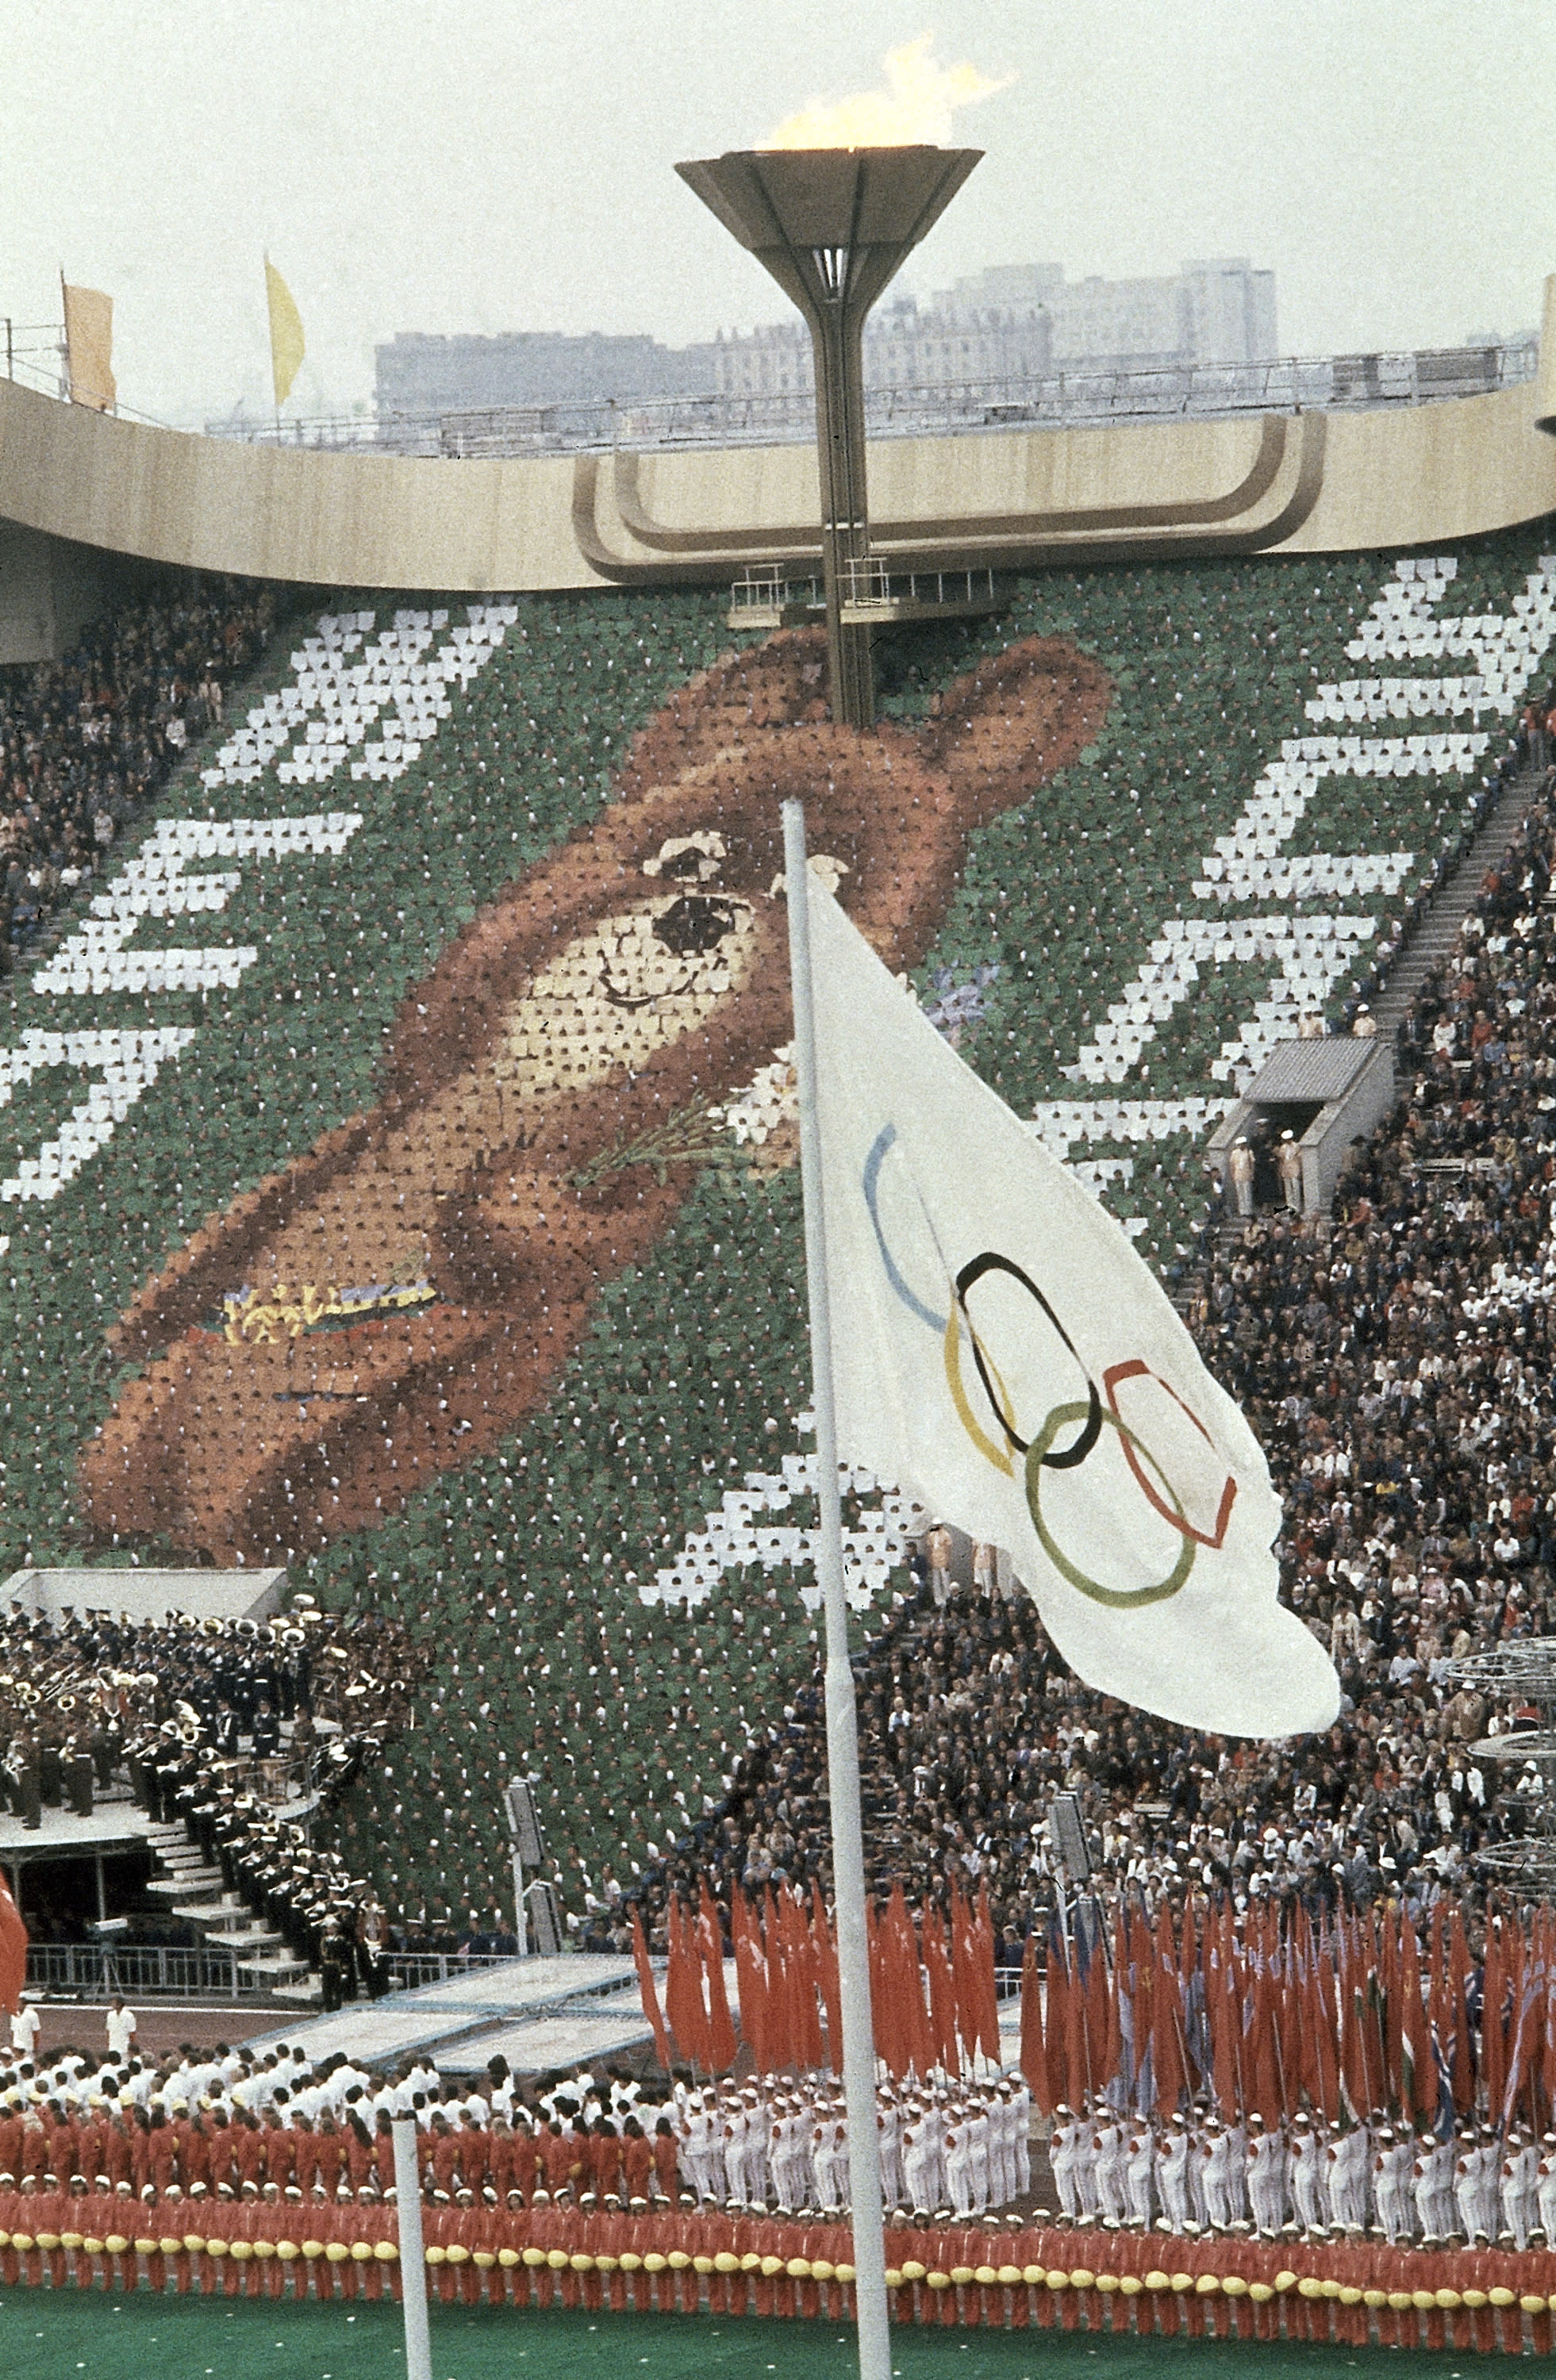 FILE - In this July 19, 1980, file photo, members of the crowd hold up 3,500 cards to create an image of Misha the Bear Cup, the mascot of the Moscow Olympic Games at the Lenin Stadium in Russia on. Above burns the Olympic flame. (AP Photo/File)